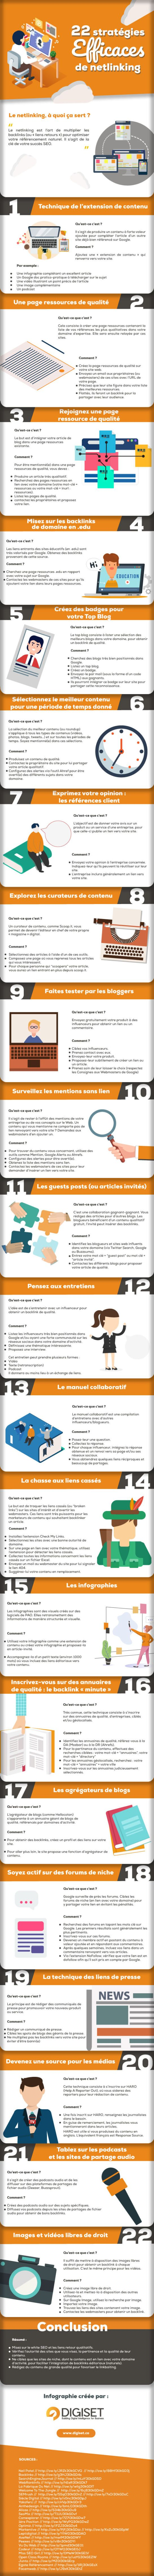 strategies-efficaces-de-netlinking-autoveille